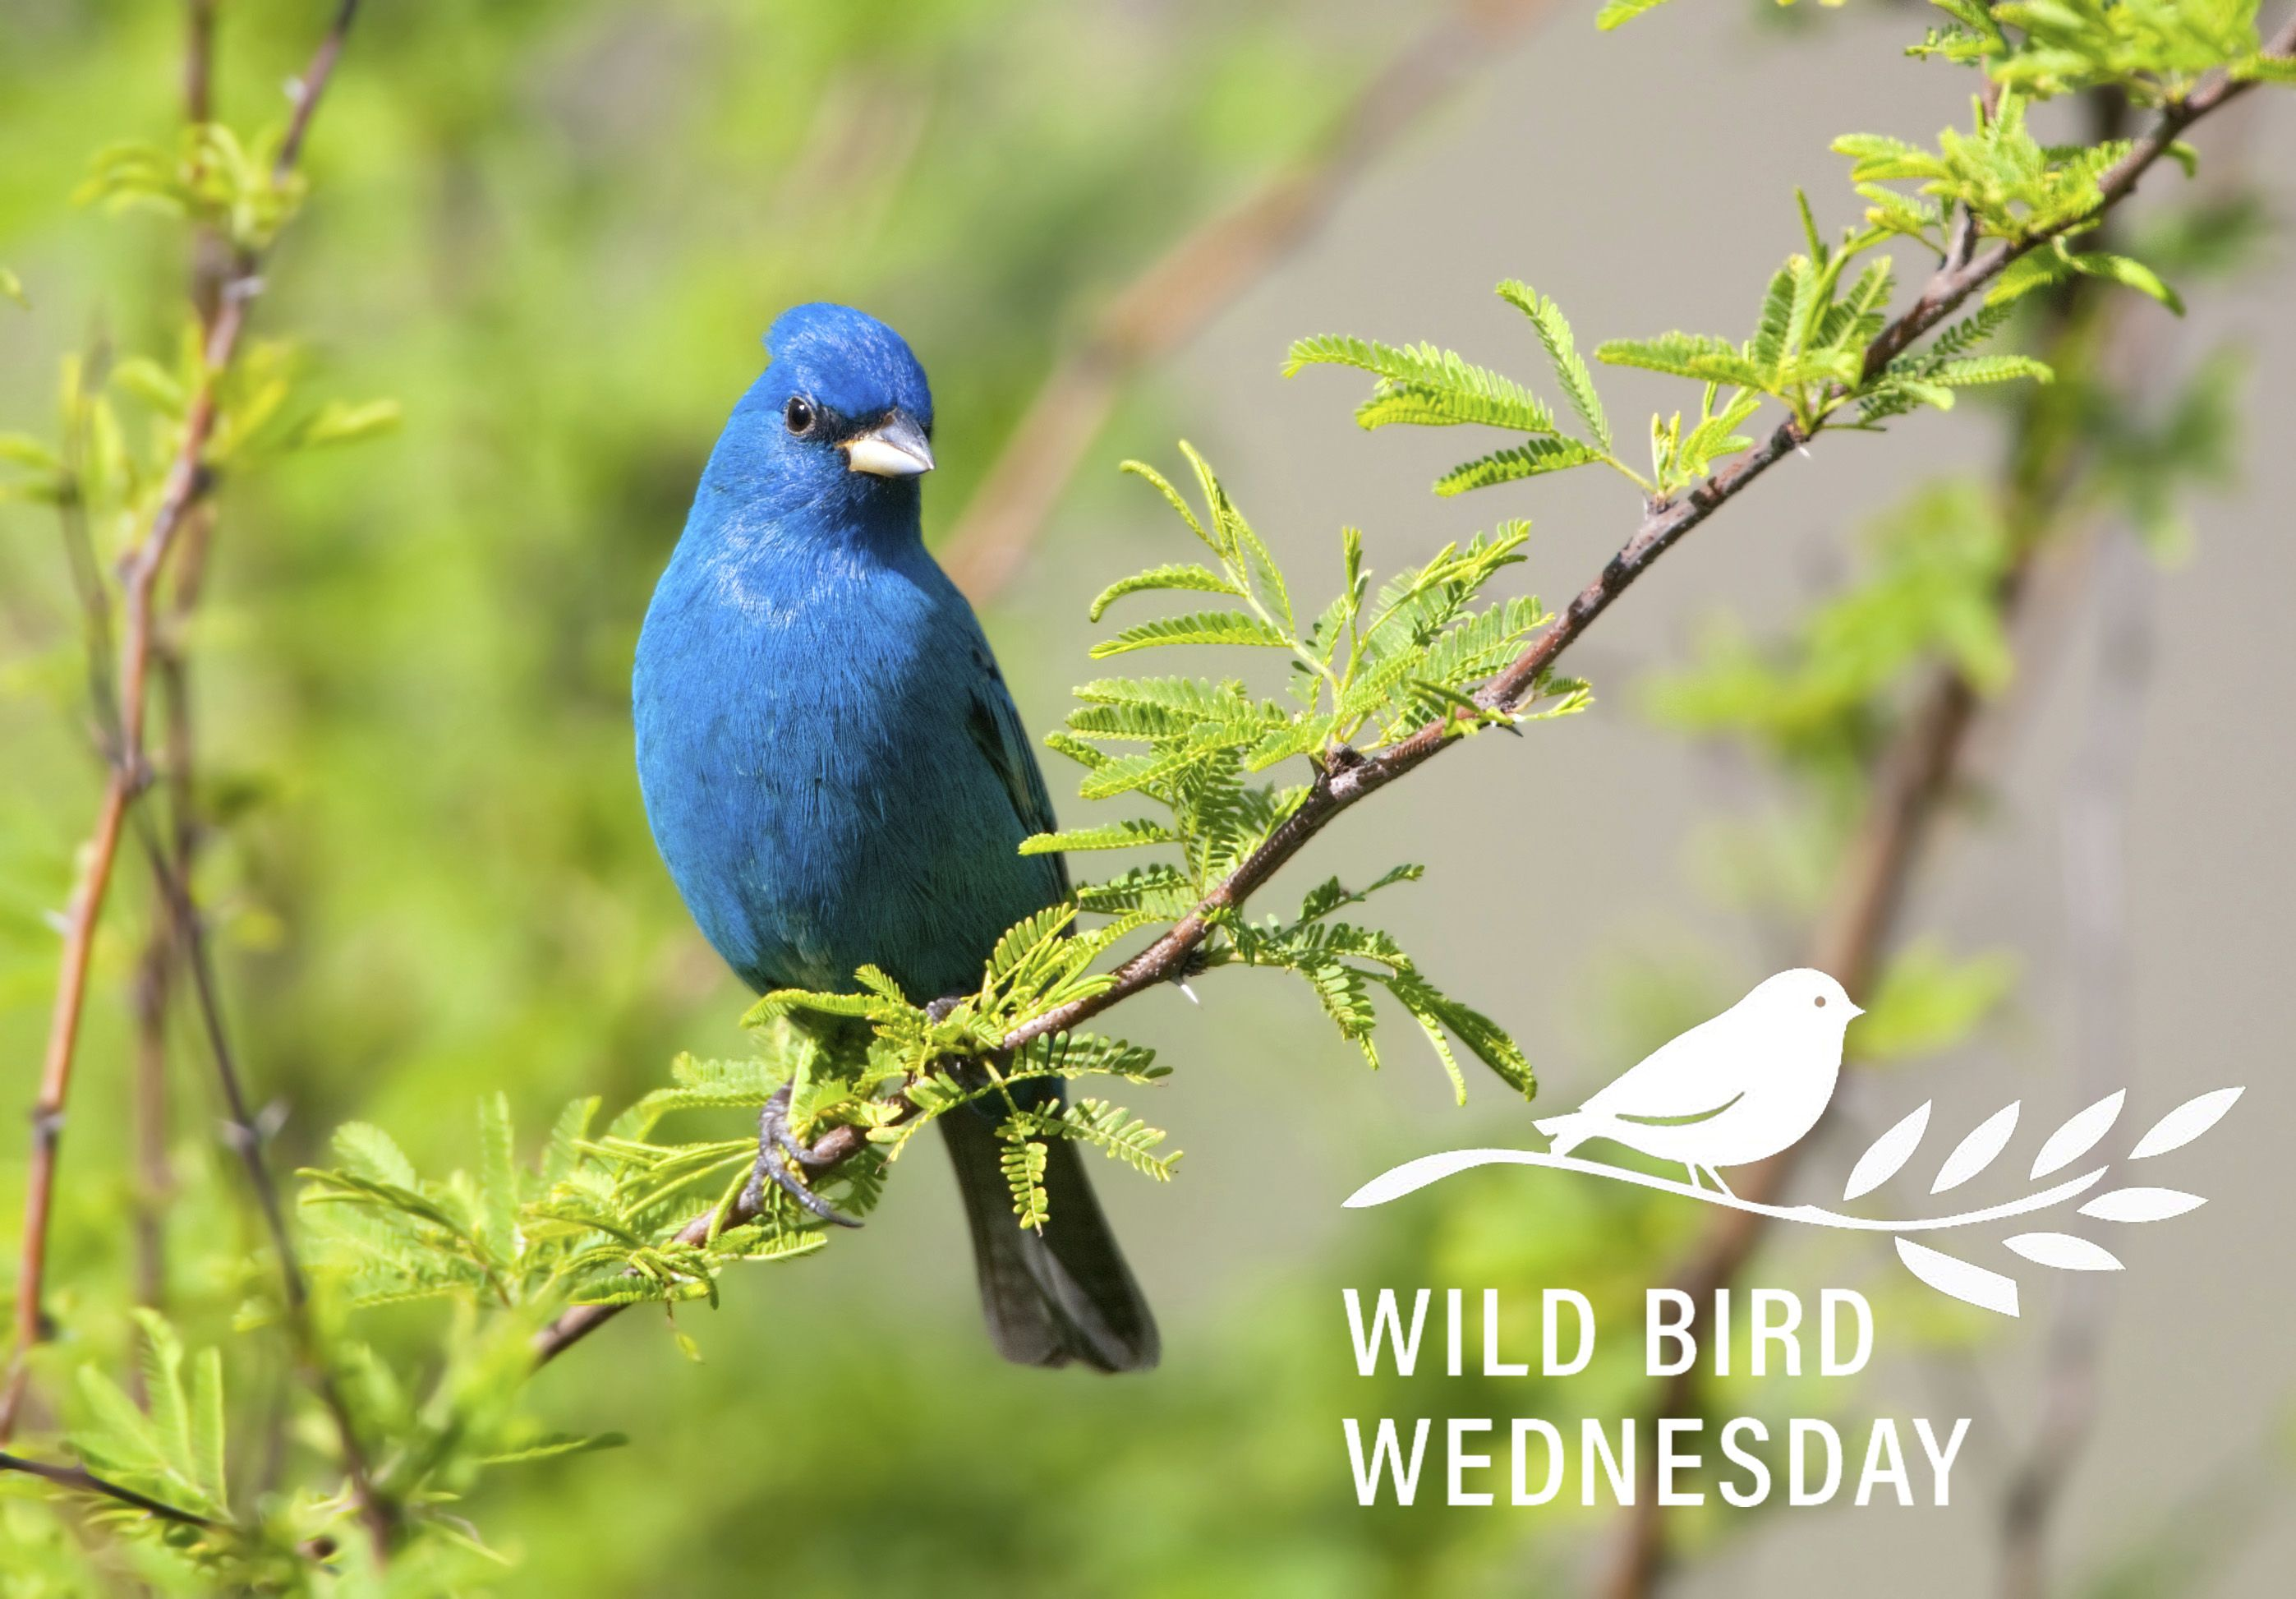 It S Wild Bird Wednesday Can You Name This Songbird Whose